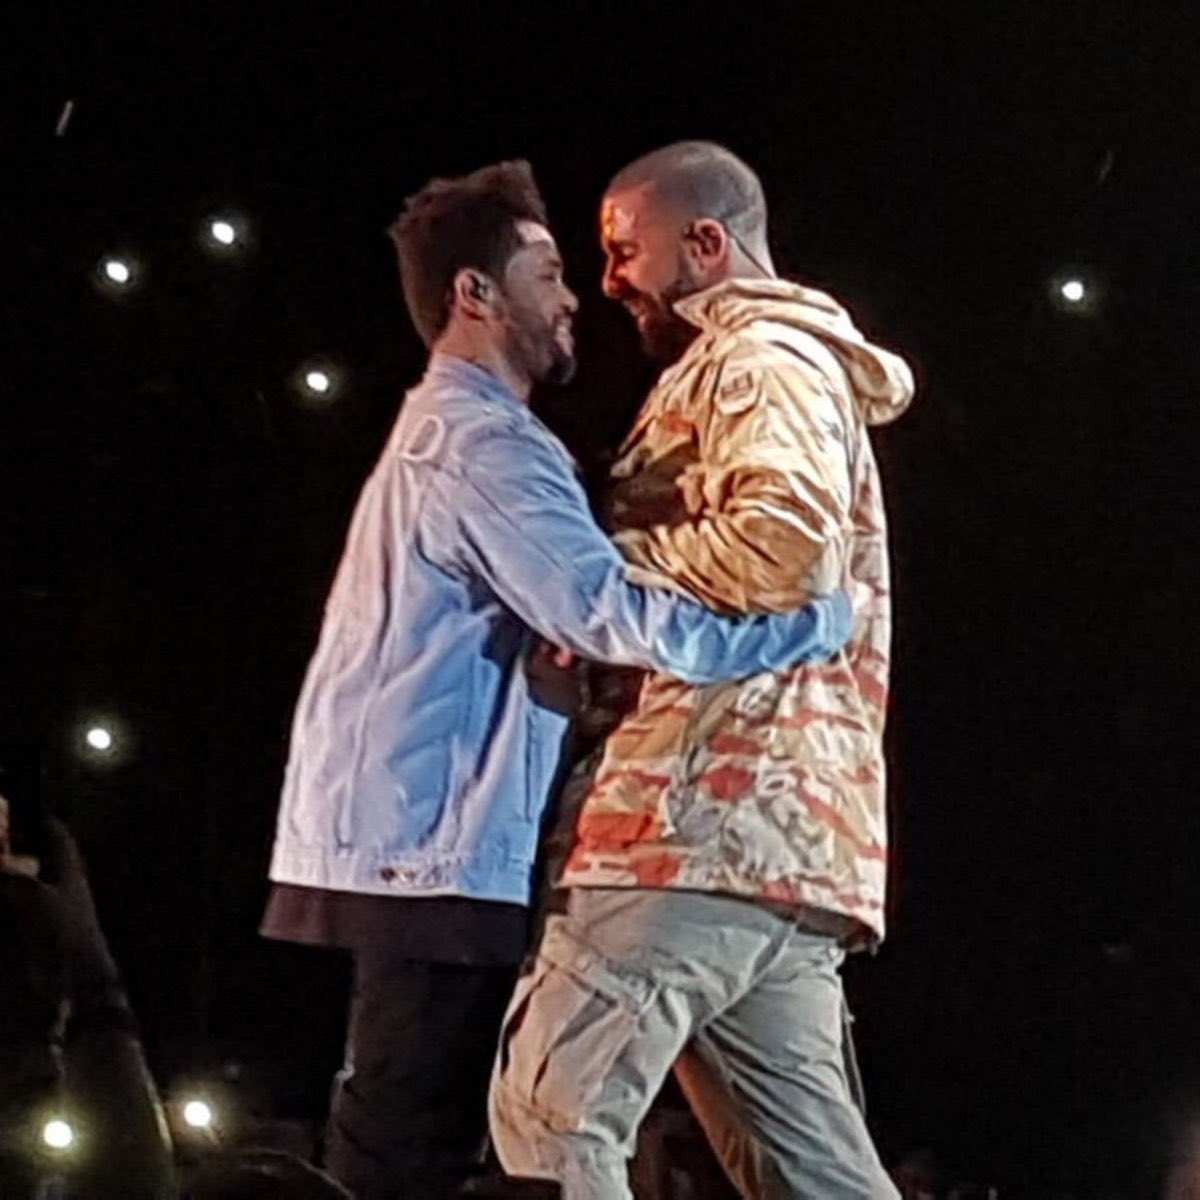 I know The Weeknd was beating Drake shit up that night